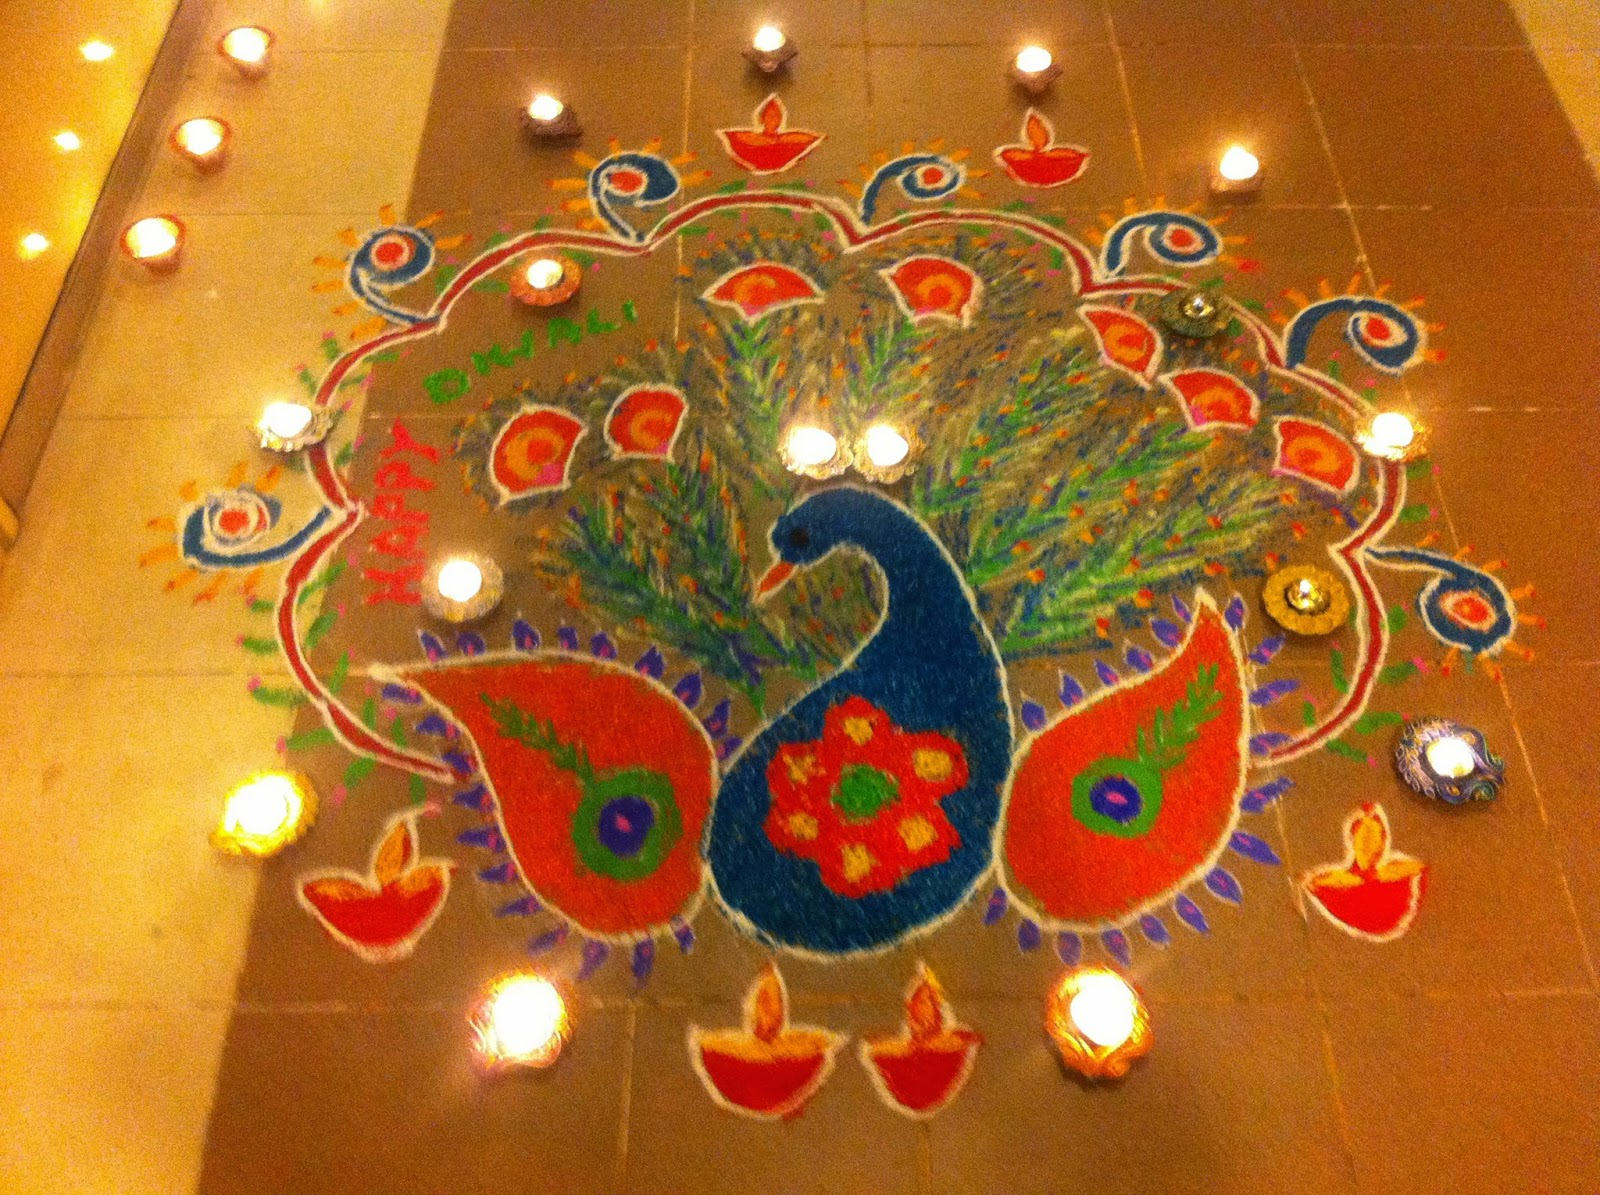 Diwali 2015 rangoli designs for diwali traditional rangoli diwali is a festival of lights as we all know and we burn firecrackers also wish happy deepavali to your family also m4hsunfo